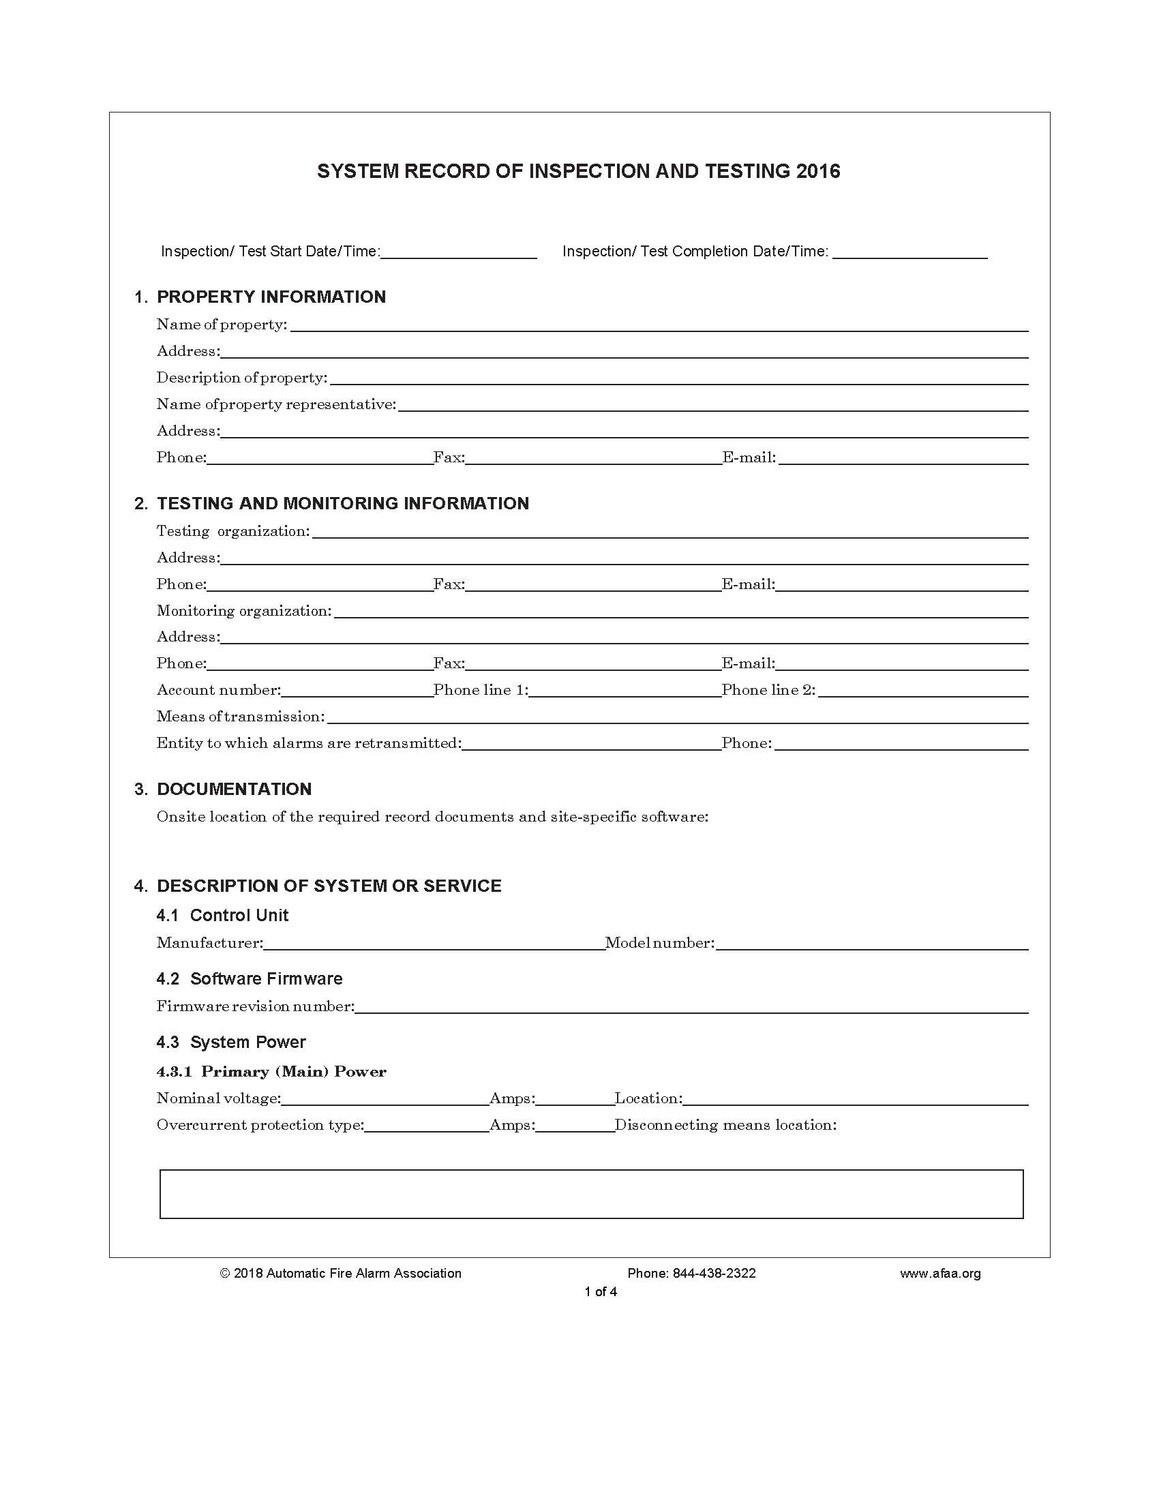 Fire Alarm Inspection and Testing Forms - 2016 Edition